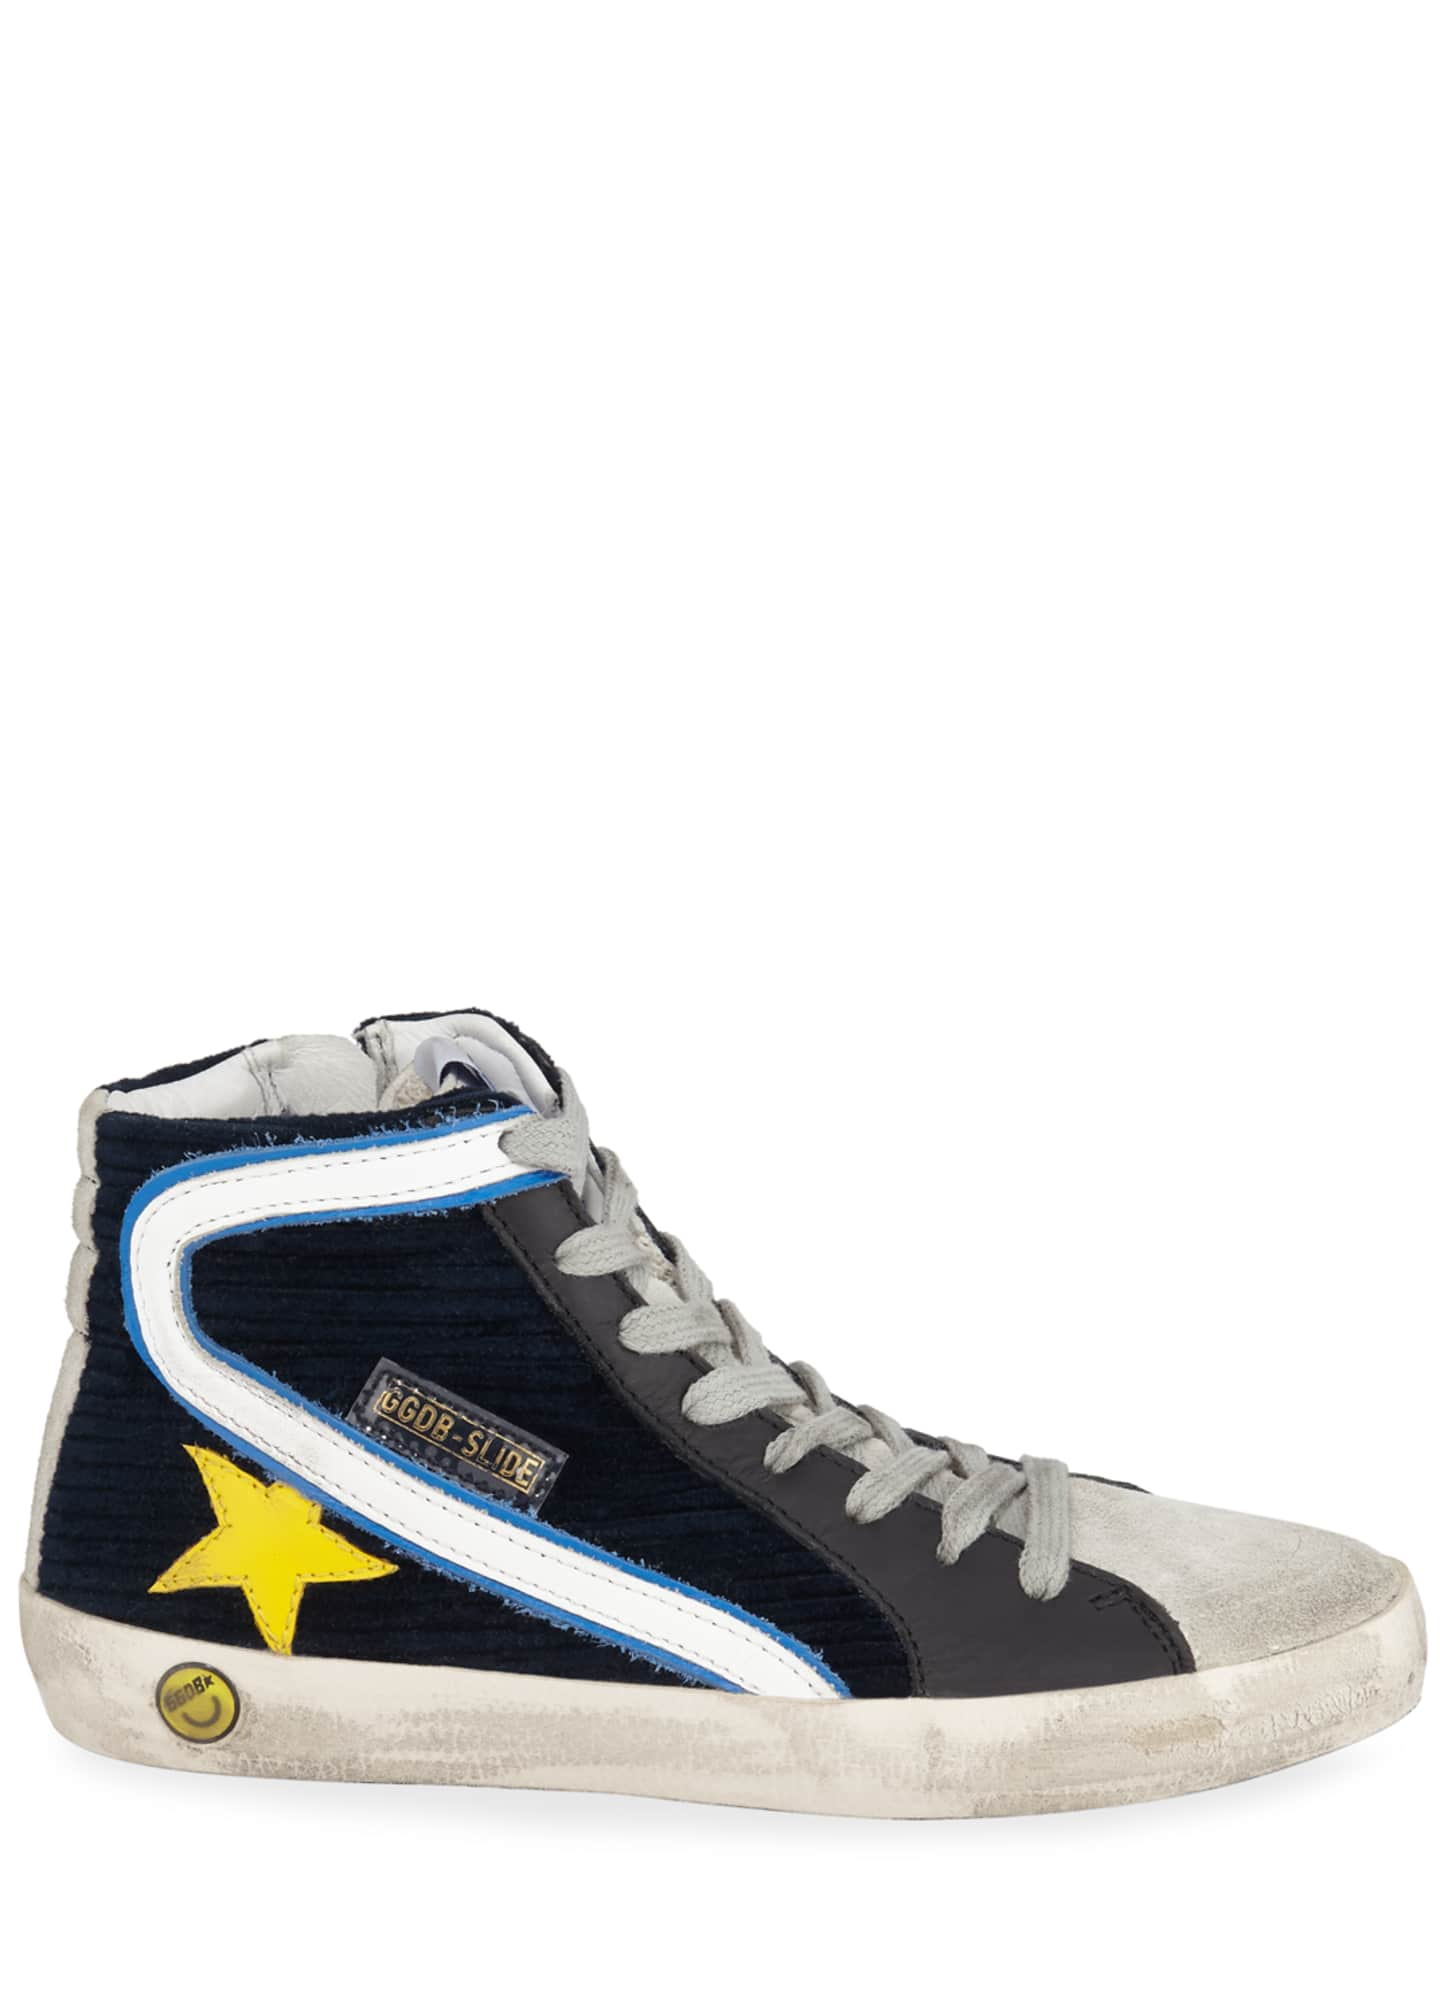 Image 2 of 4: Boy's Slide High-Top Corduroy Sneakers, Toddler/Kids